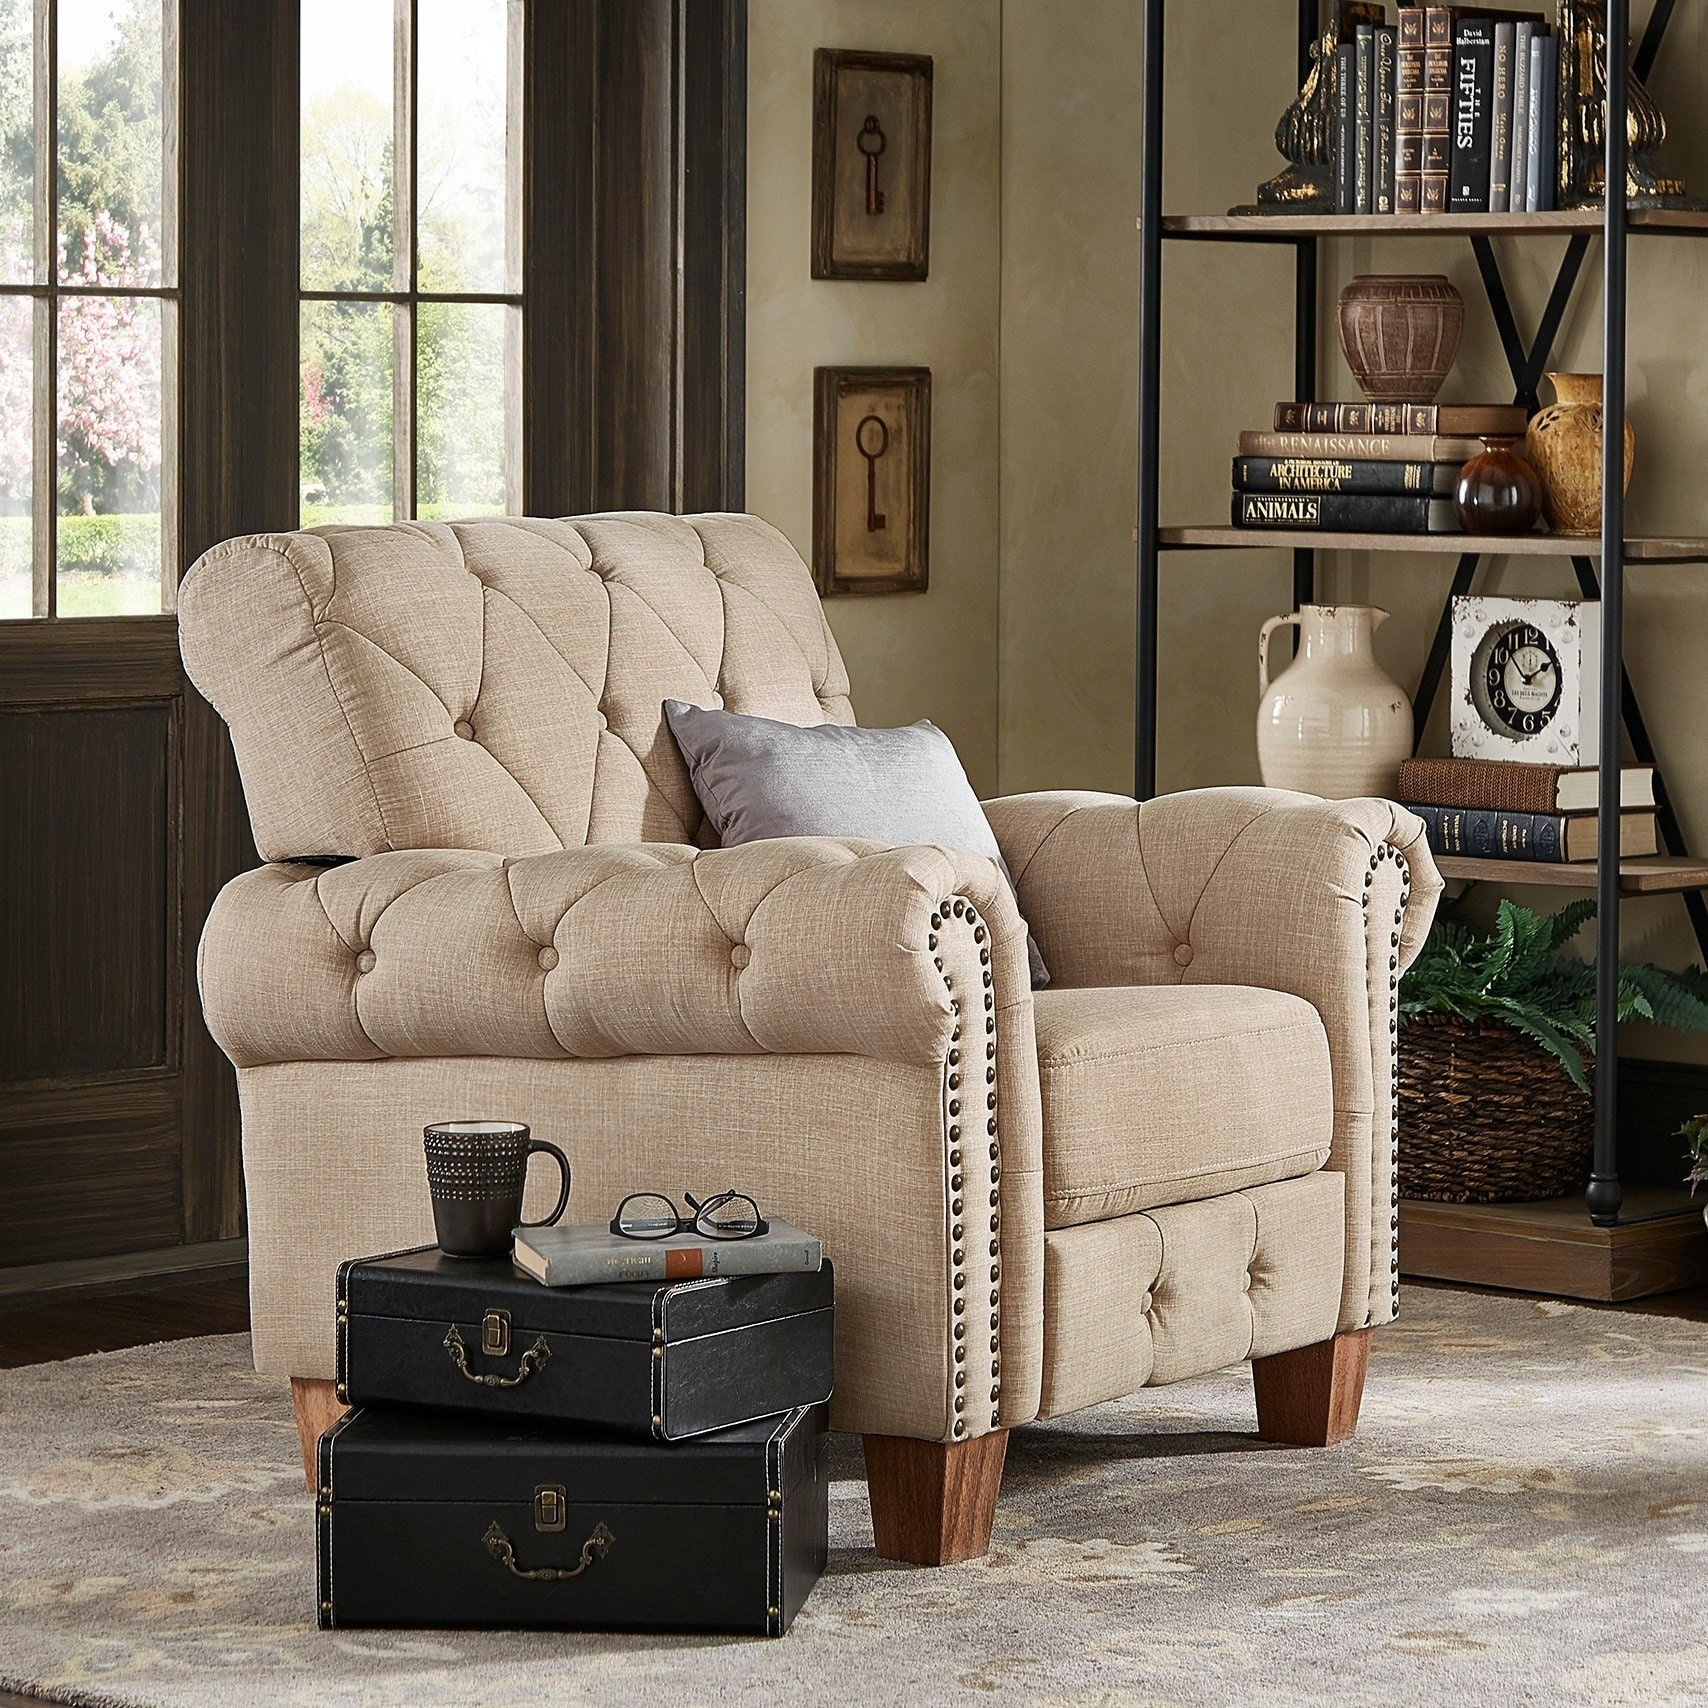 Comfy Reading Chair for Bedroom Awesome Small Recliners for Bedroom New Outstanding Living Room